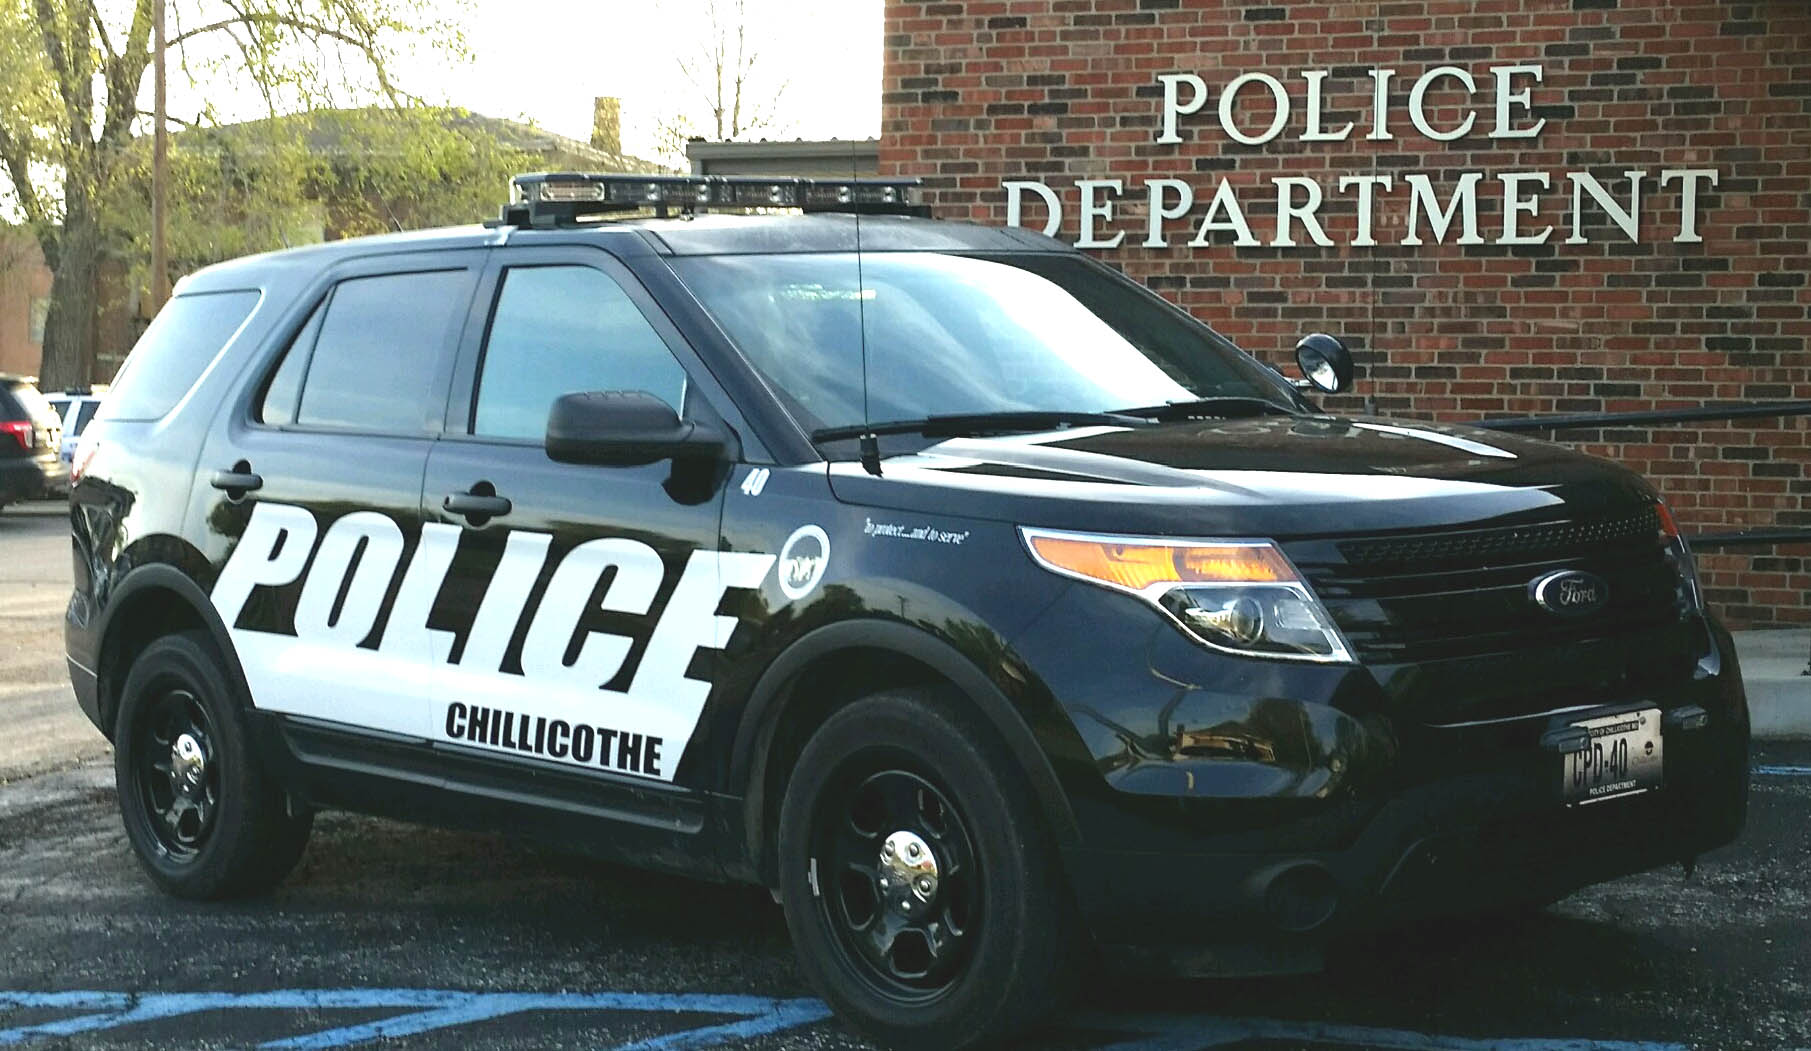 Police consider community outreach programs in Chillicothe